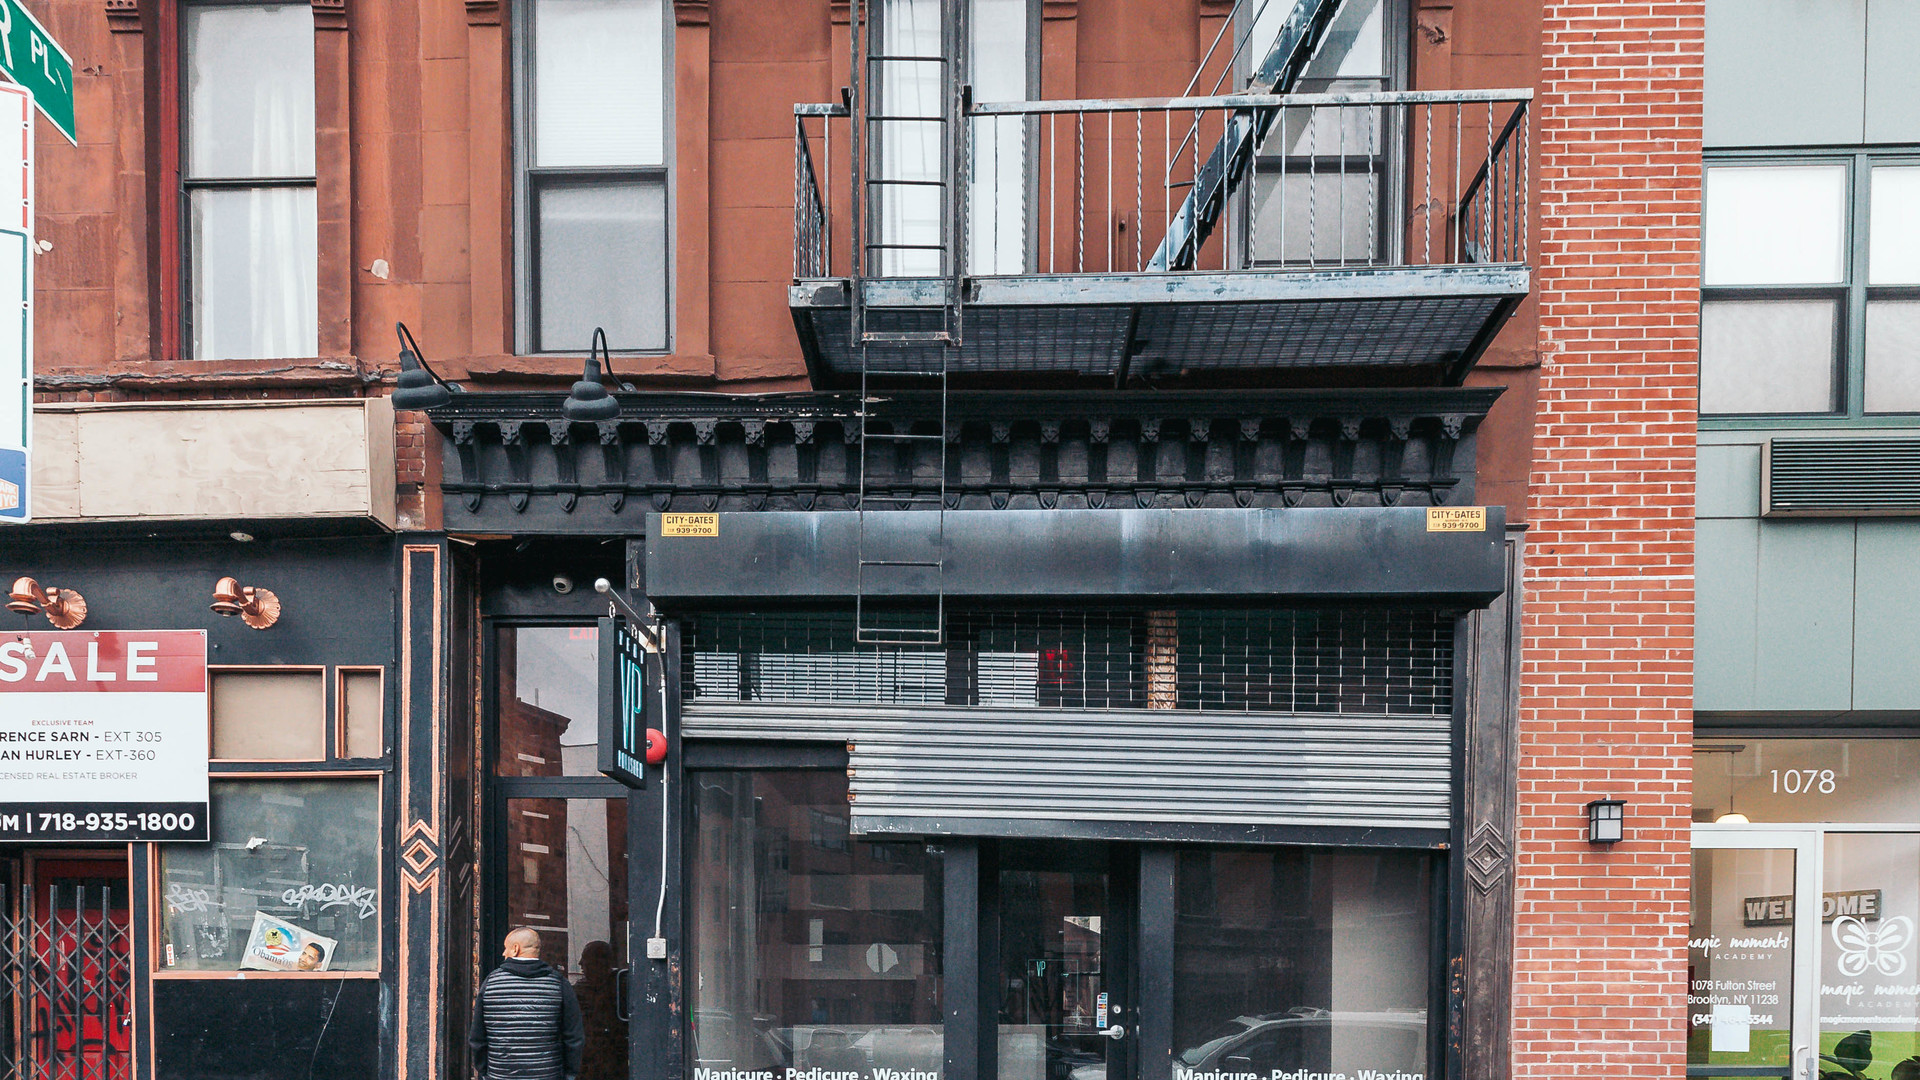 A $5,500 commercial property in Bed-Stuy, Brooklyn - Nooklyn